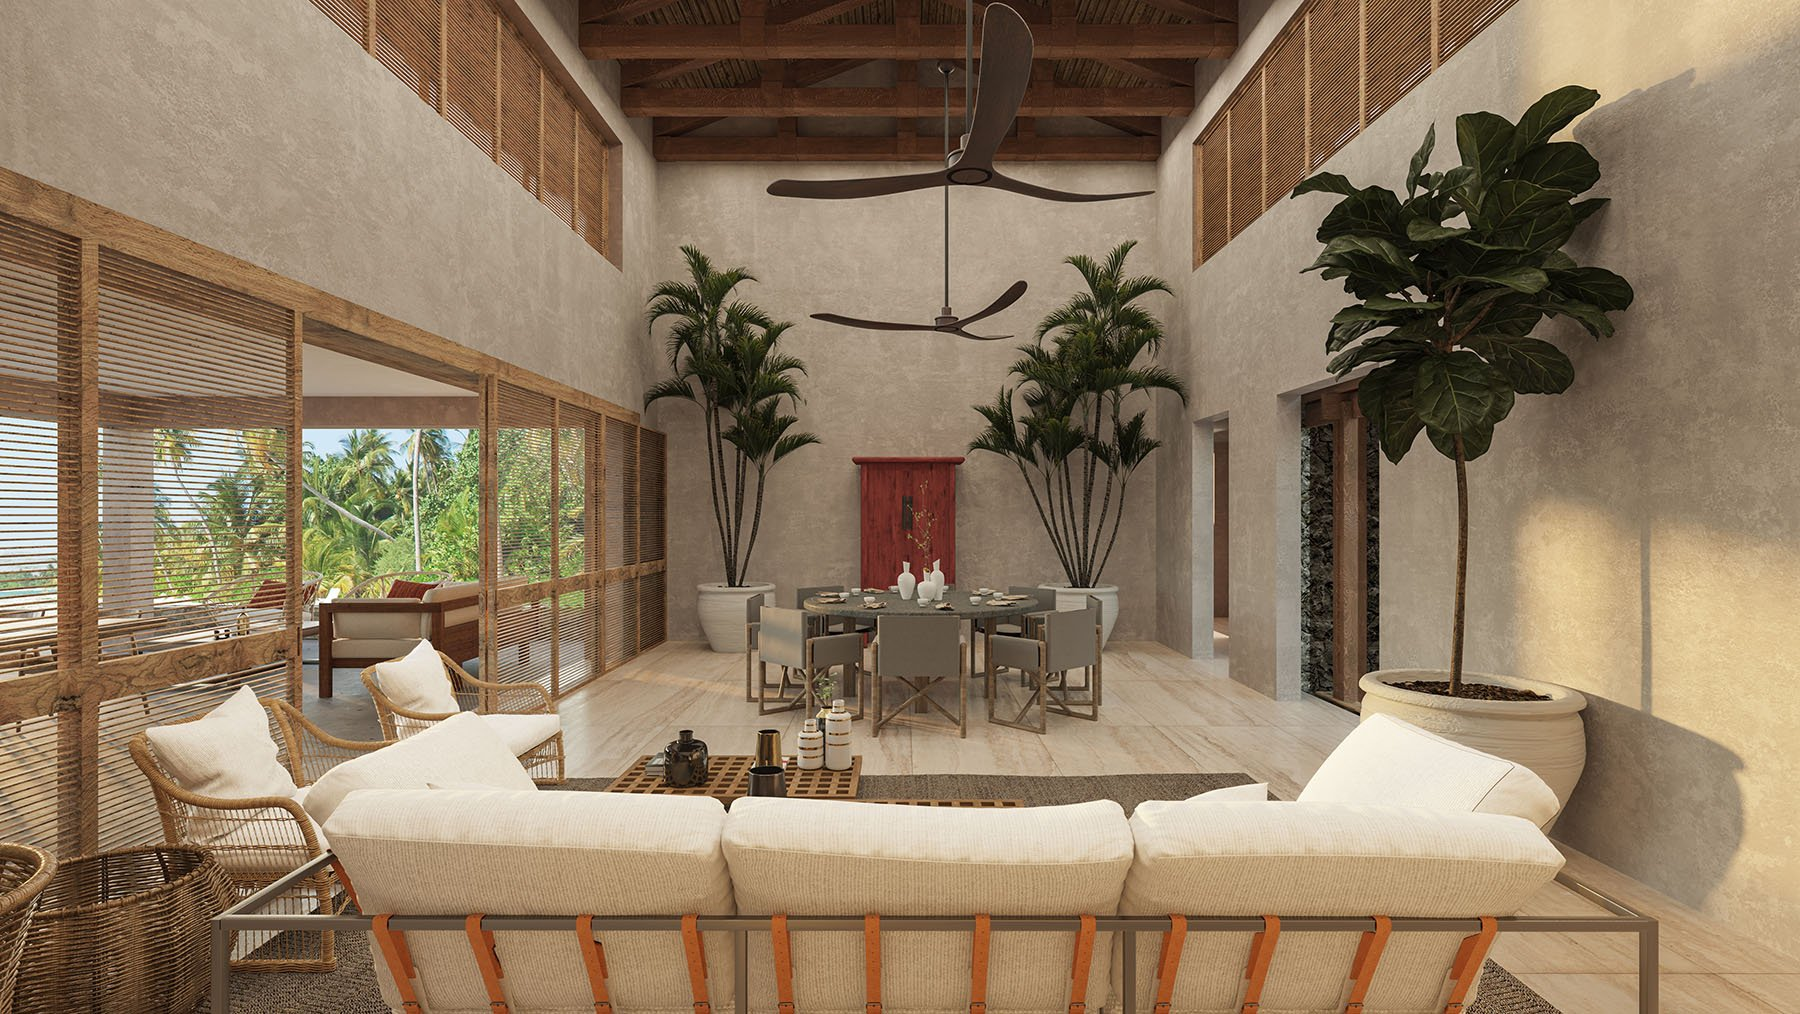 RESERVA - Punta Mita luxury real estate and vacation rental villas - Riviera Nayarit, Mexico